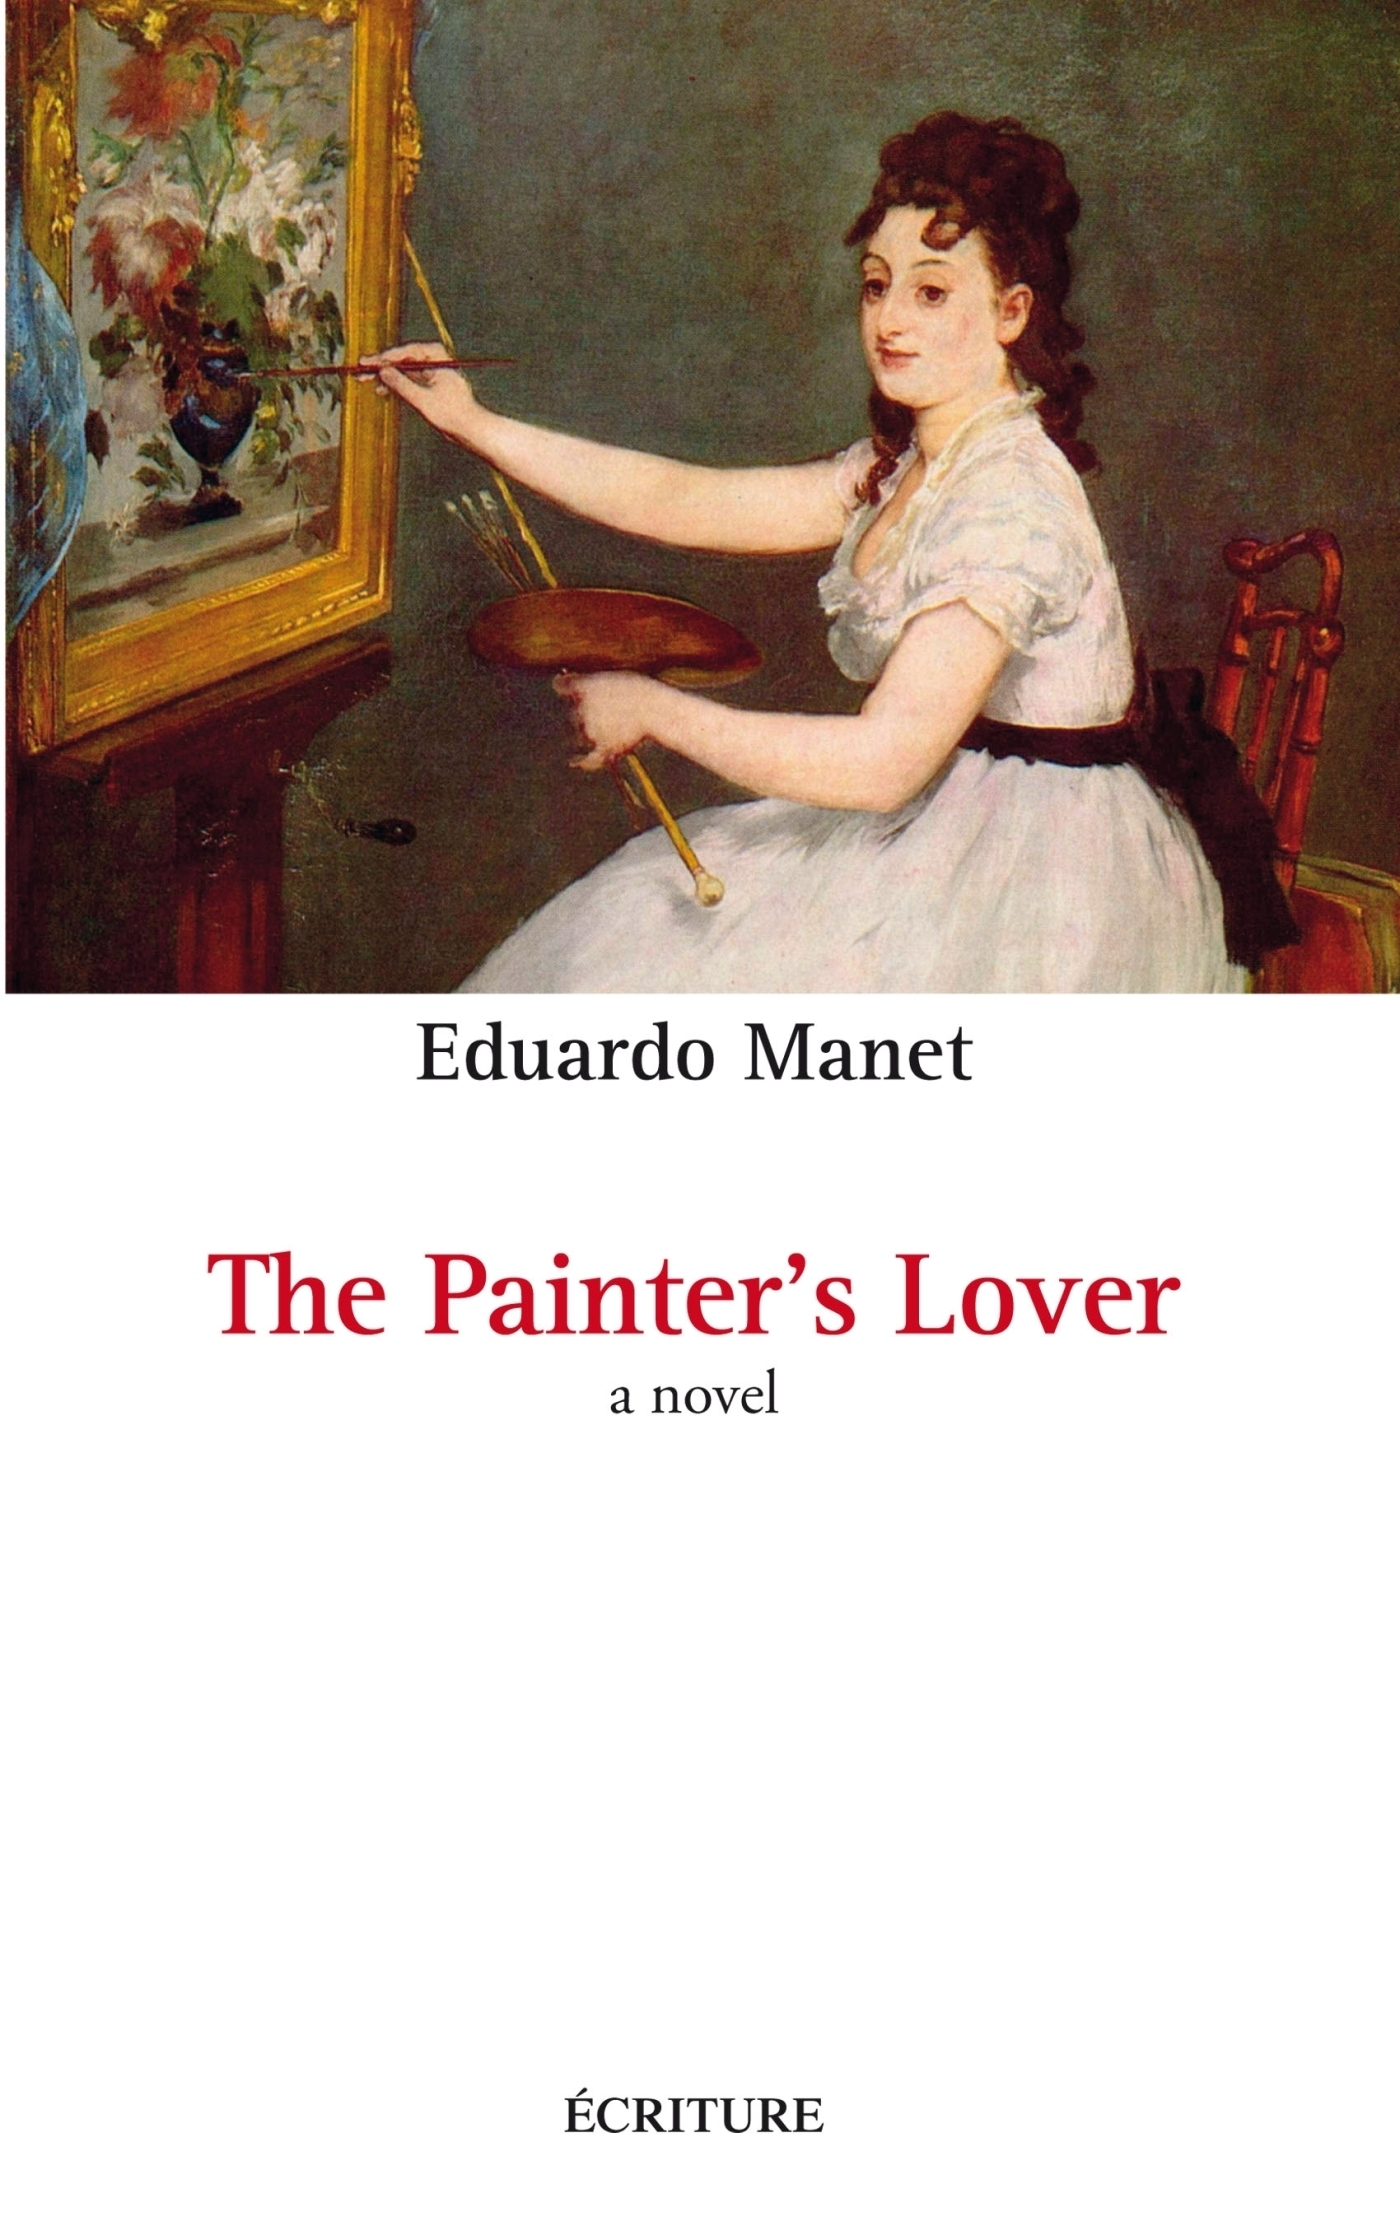 The Painter's Lover